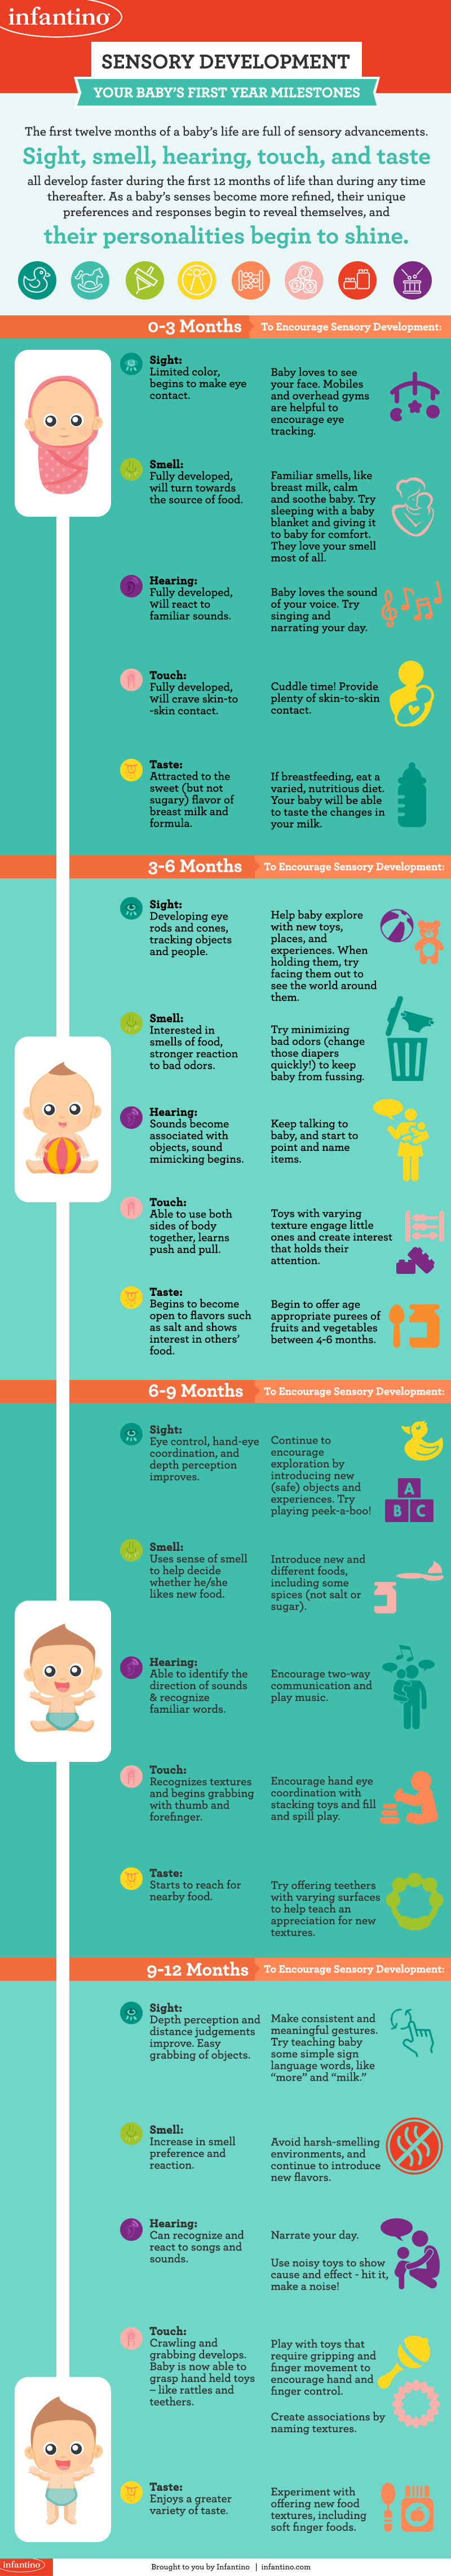 Sensory Development - Your Baby's First Year Milestones [Infographic]